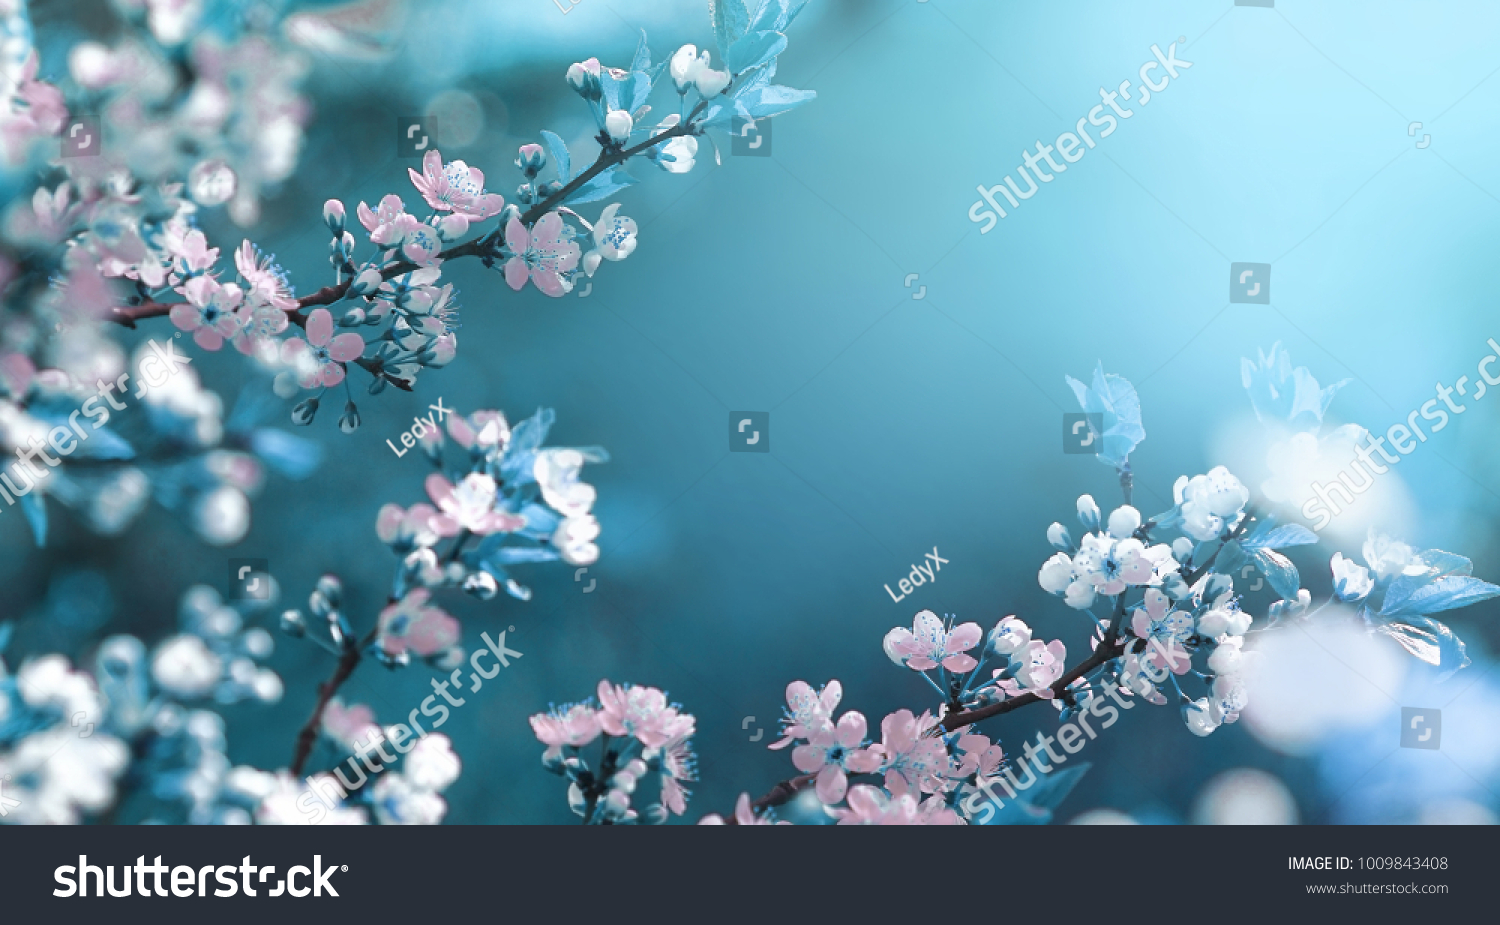 Beautiful floral spring abstract background of nature. Branches of blossoming apricot macro with soft focus on gentle light blue sky background. For easter and spring greeting cards with copy space #1009843408 - 123PhotoFree.com